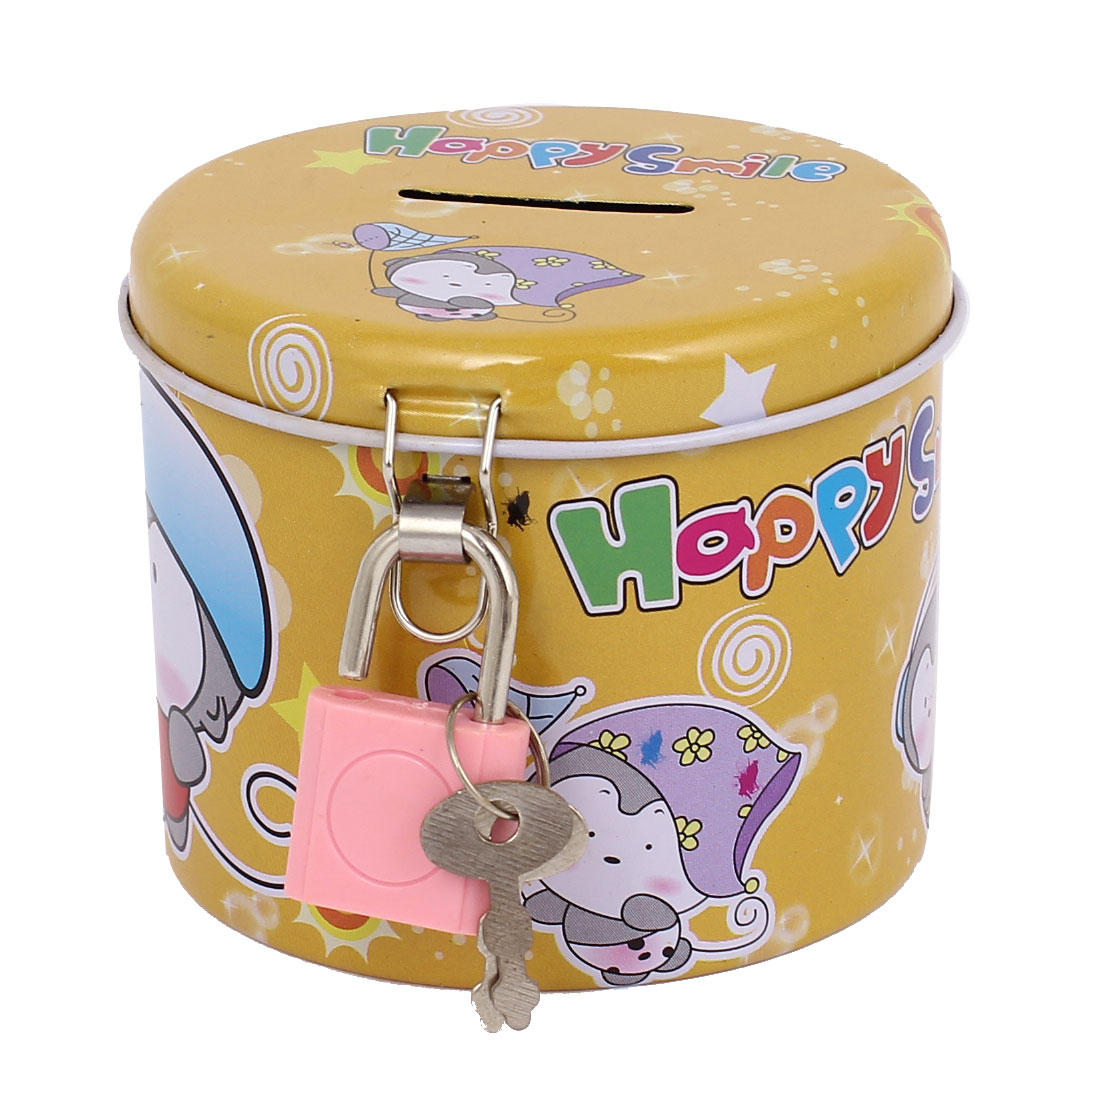 Round Design Cartoon Animal Printed Metal Piggy Bank Money Saving Box Yellow w Padlock